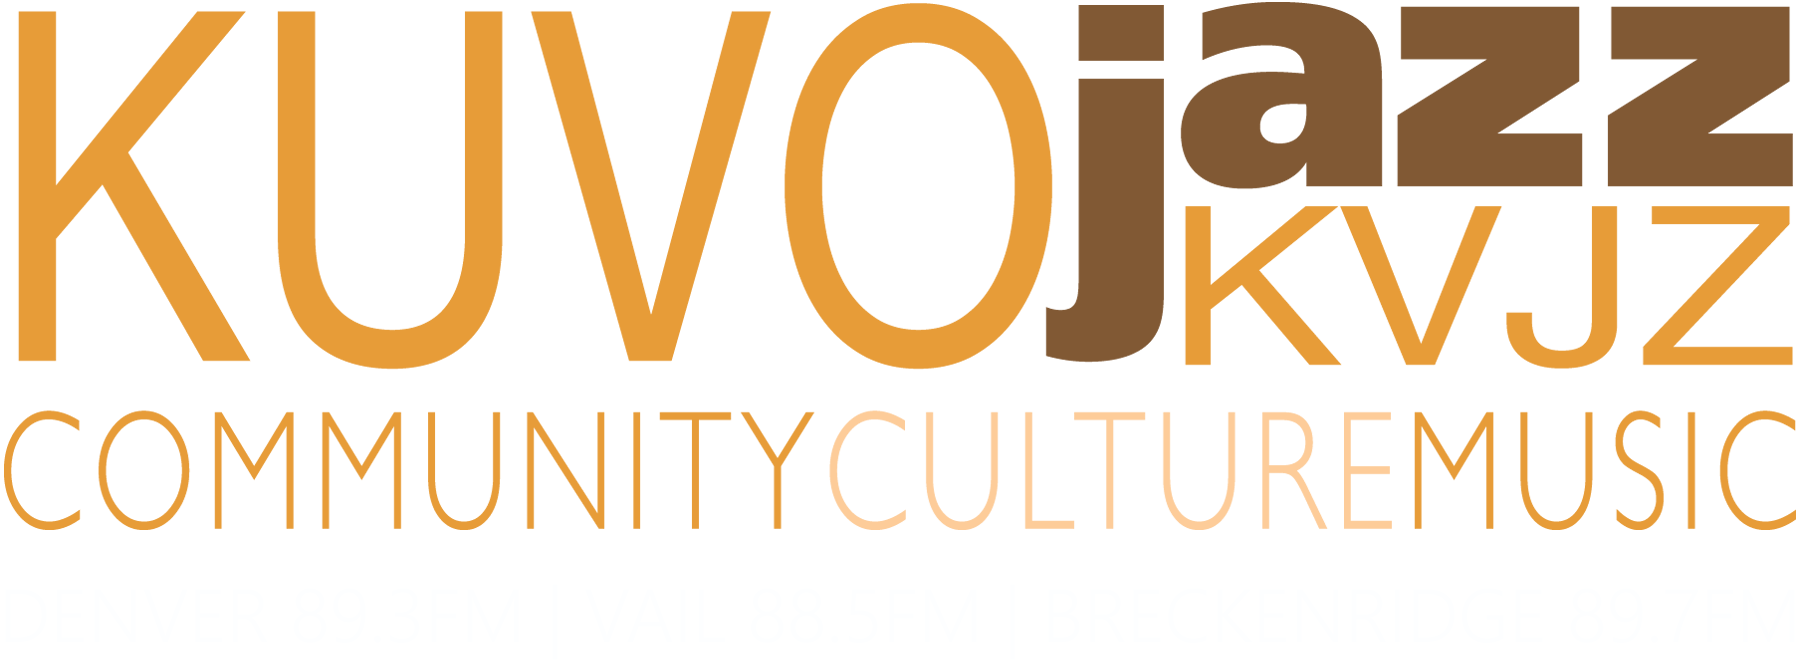 KUVO/KVJZ logo